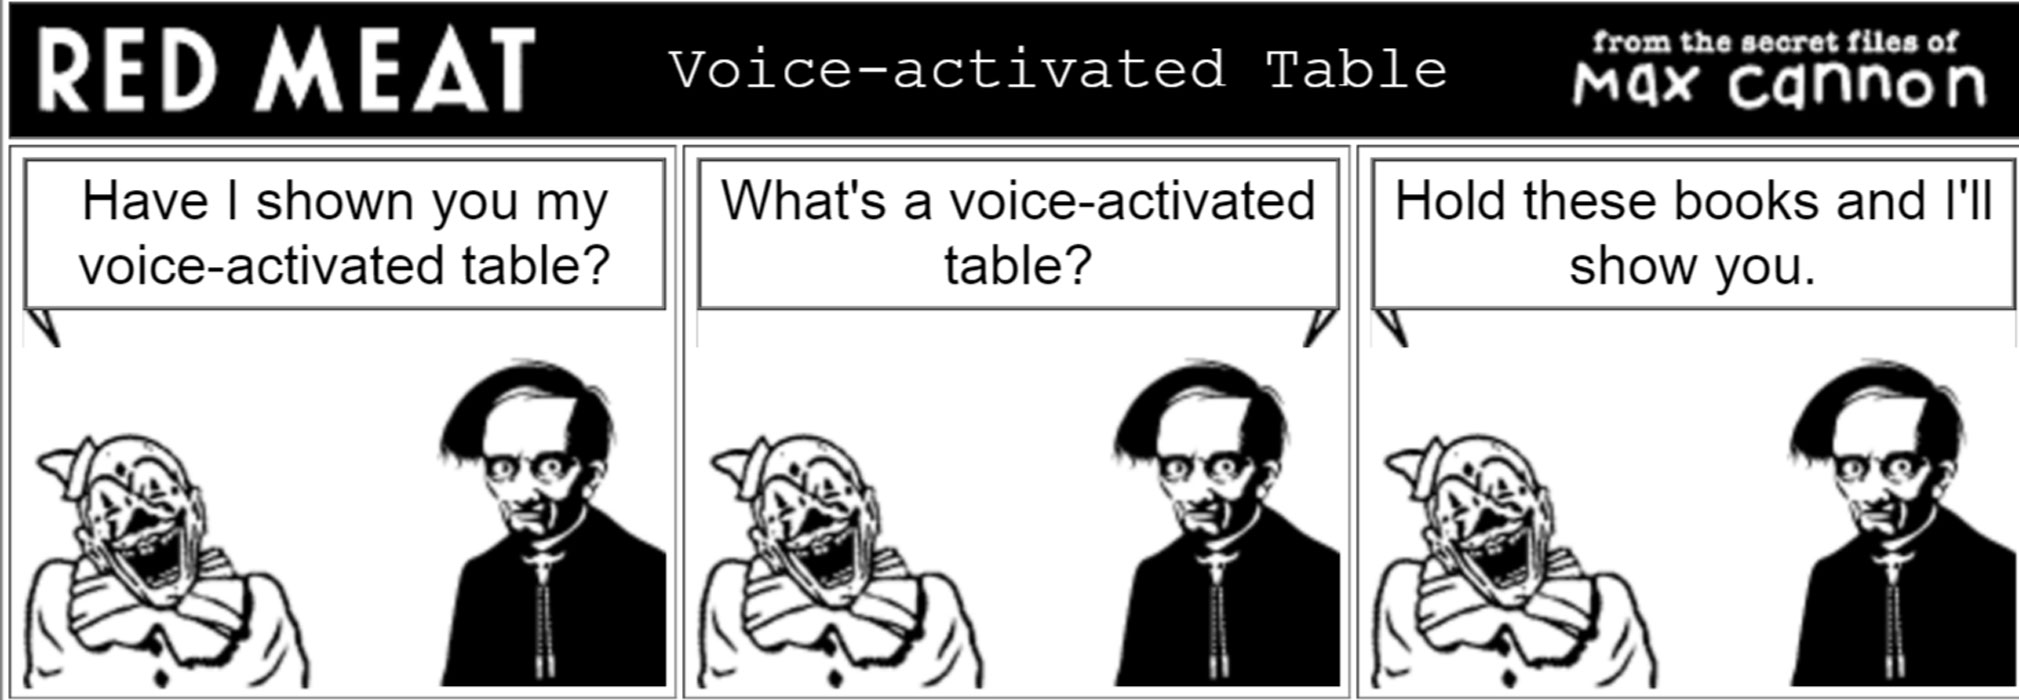 Have I shown you my voice-activate table? What's a voice-activated table? Hold these books and I'll show you.